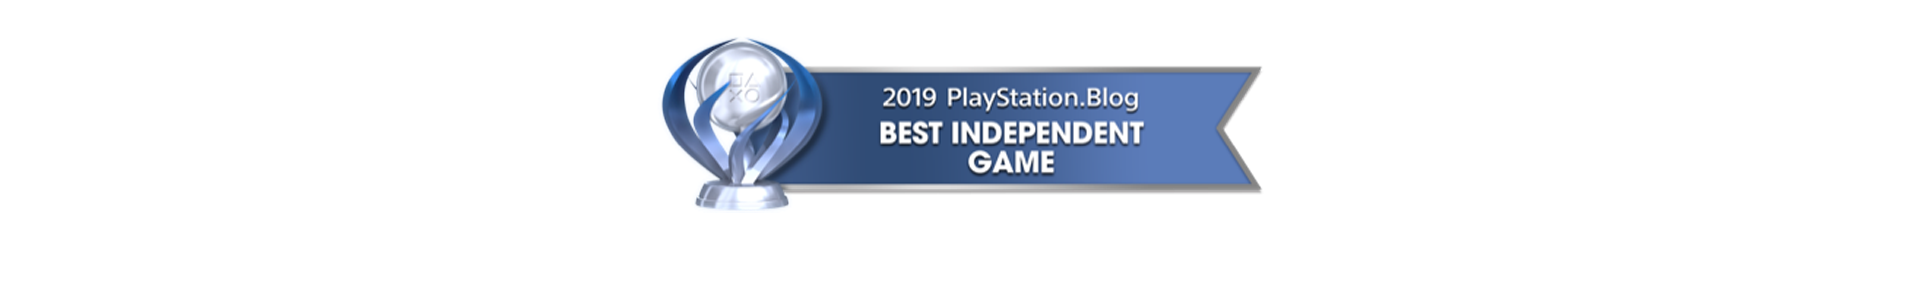 Best-independent-game-Playstation-blog-2019.png